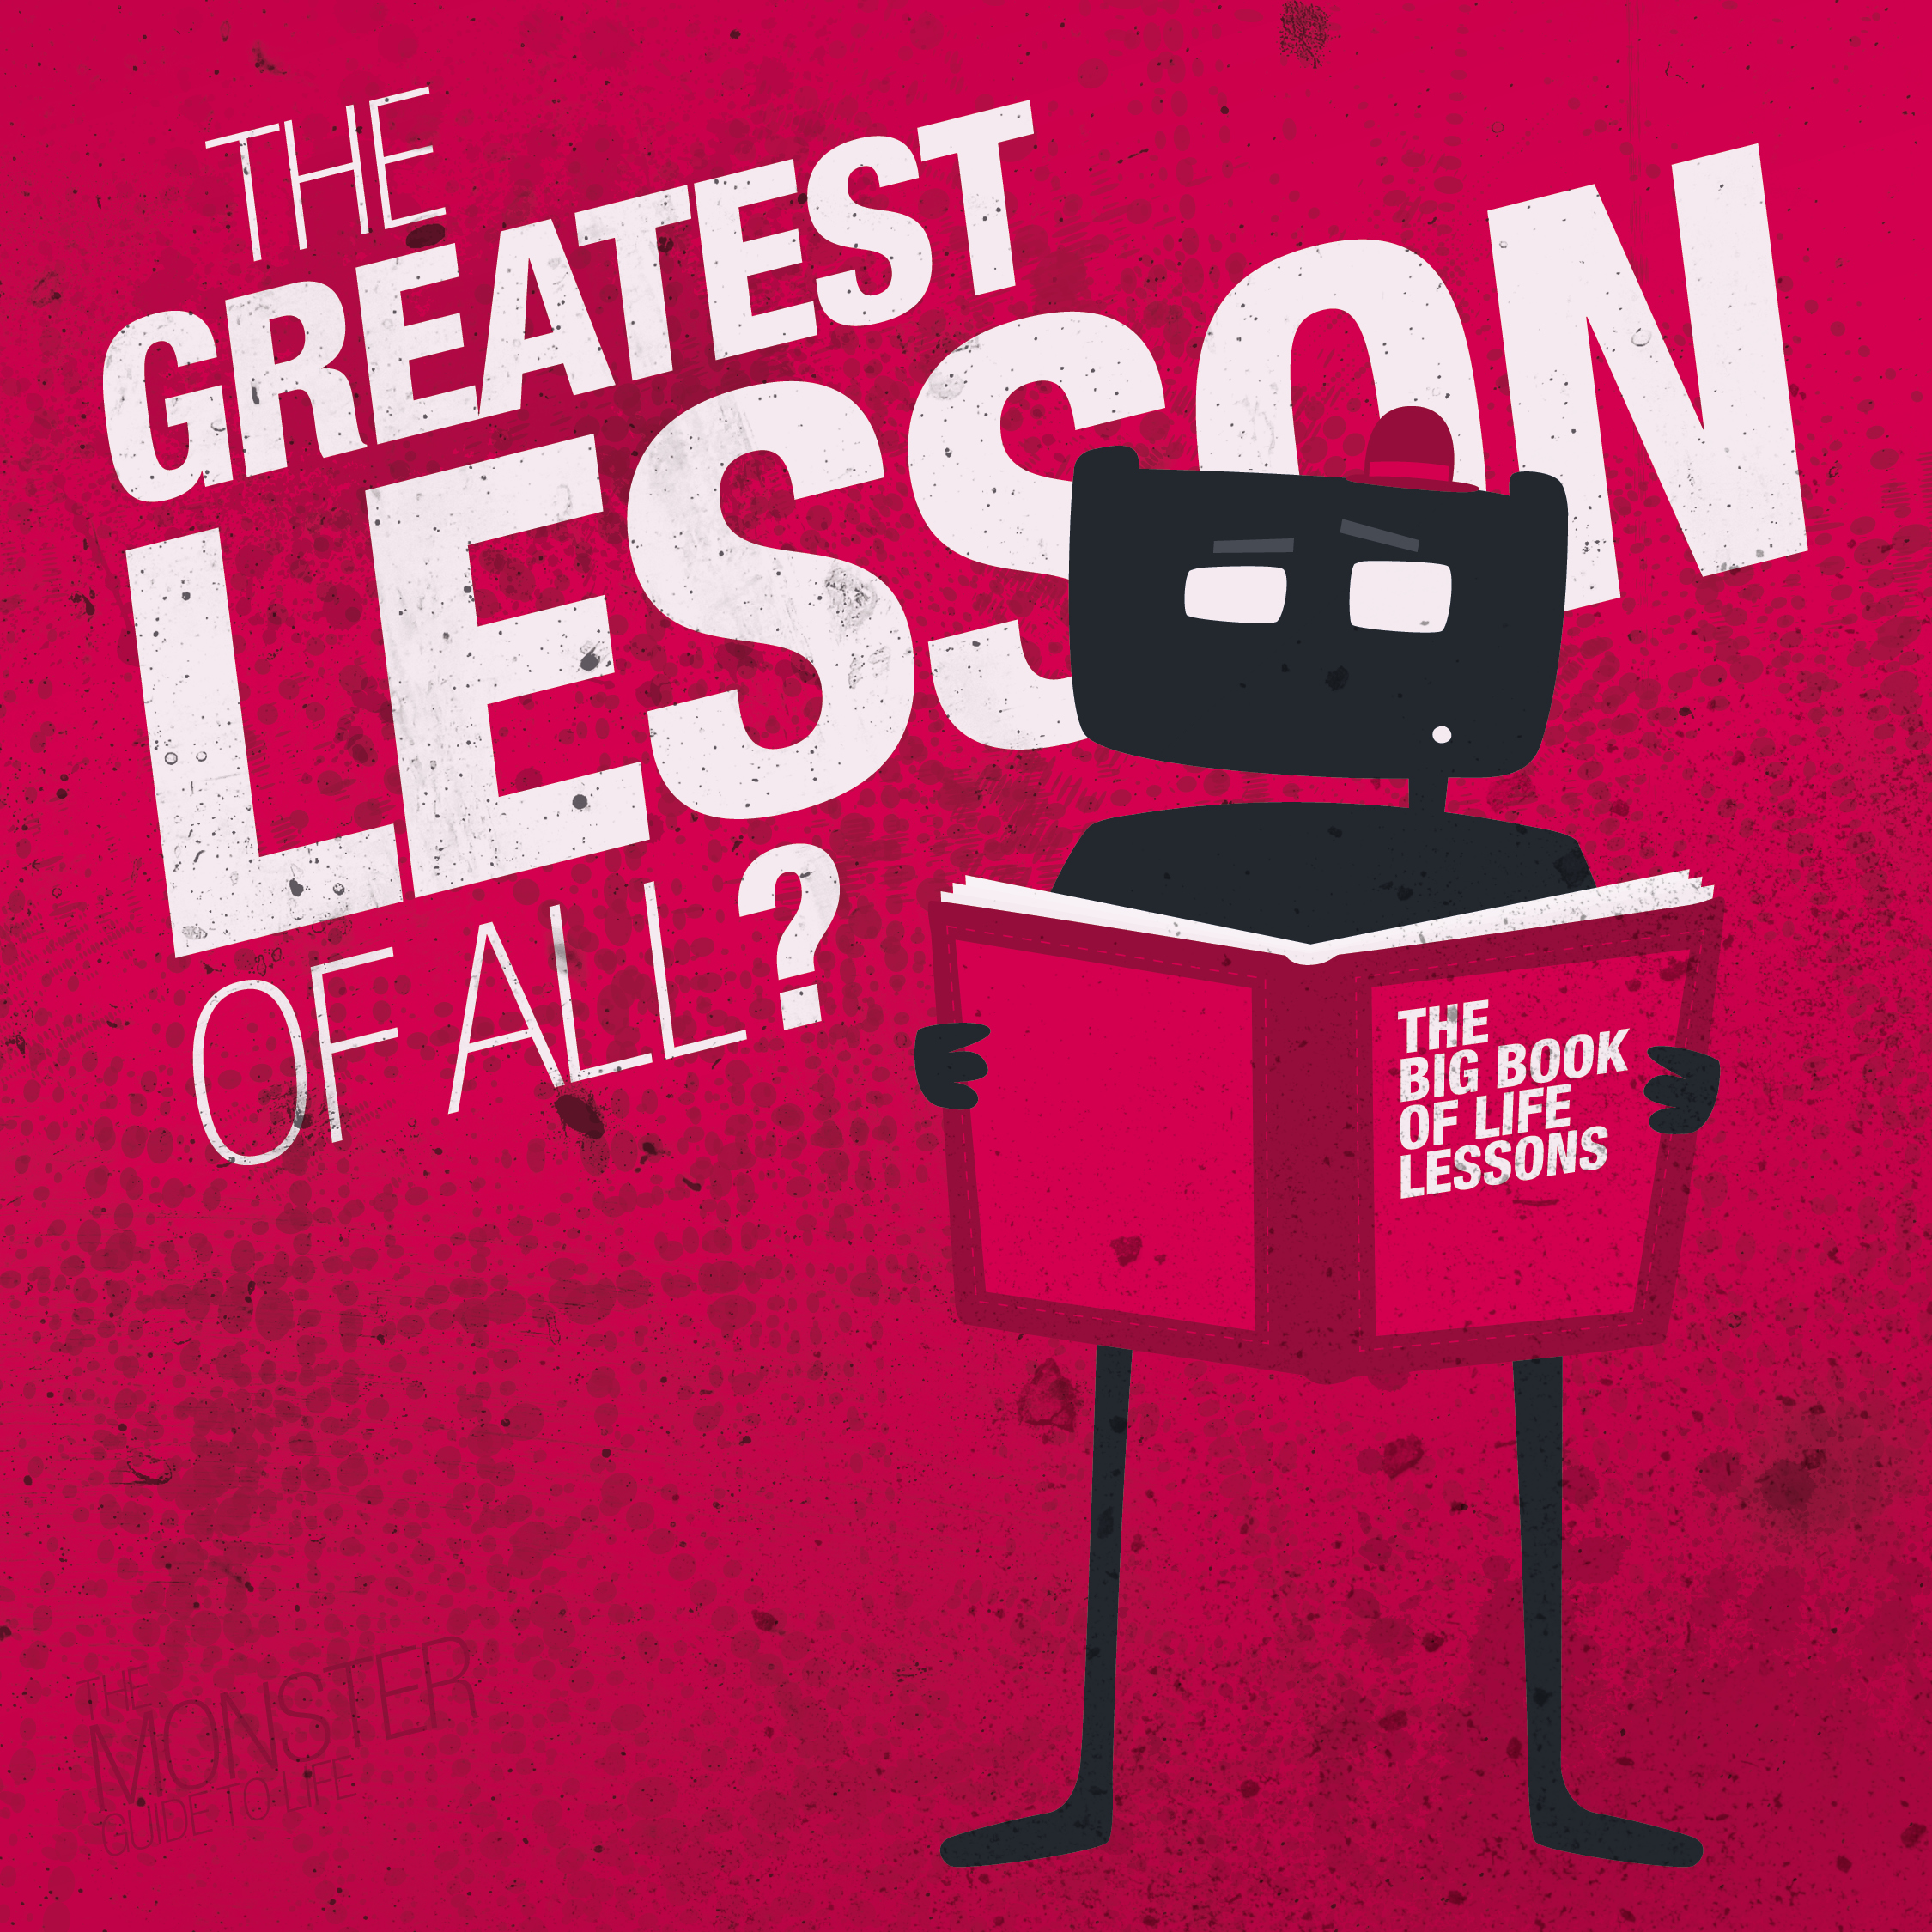 The Greatest Lesson of all?